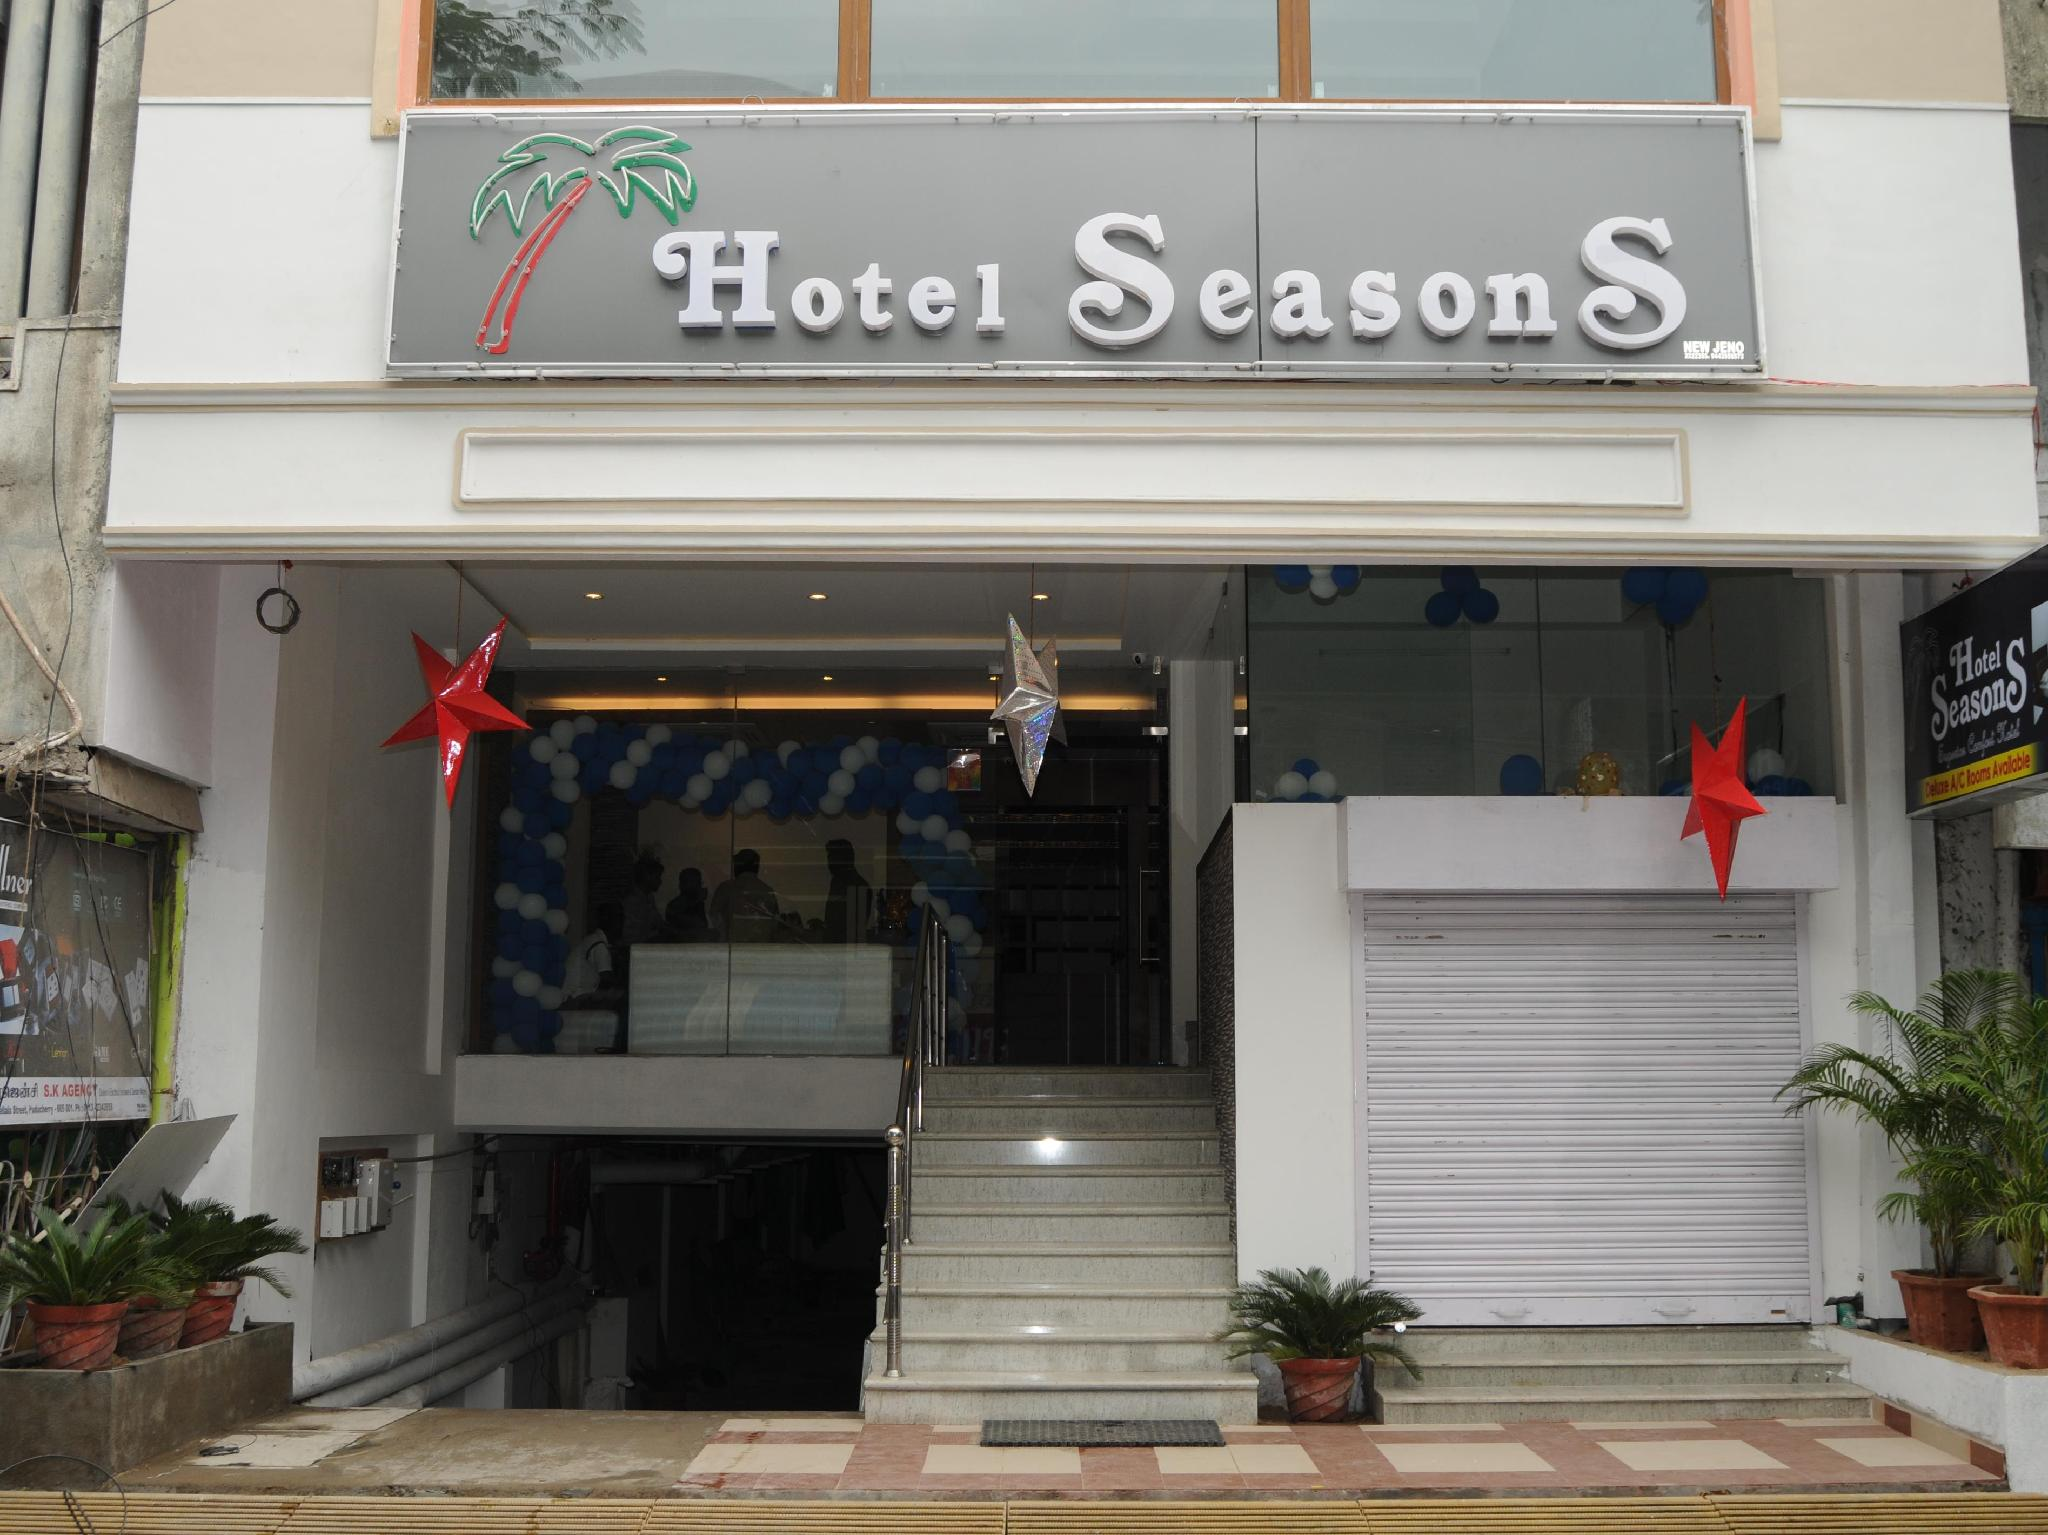 About Hotel Seasons